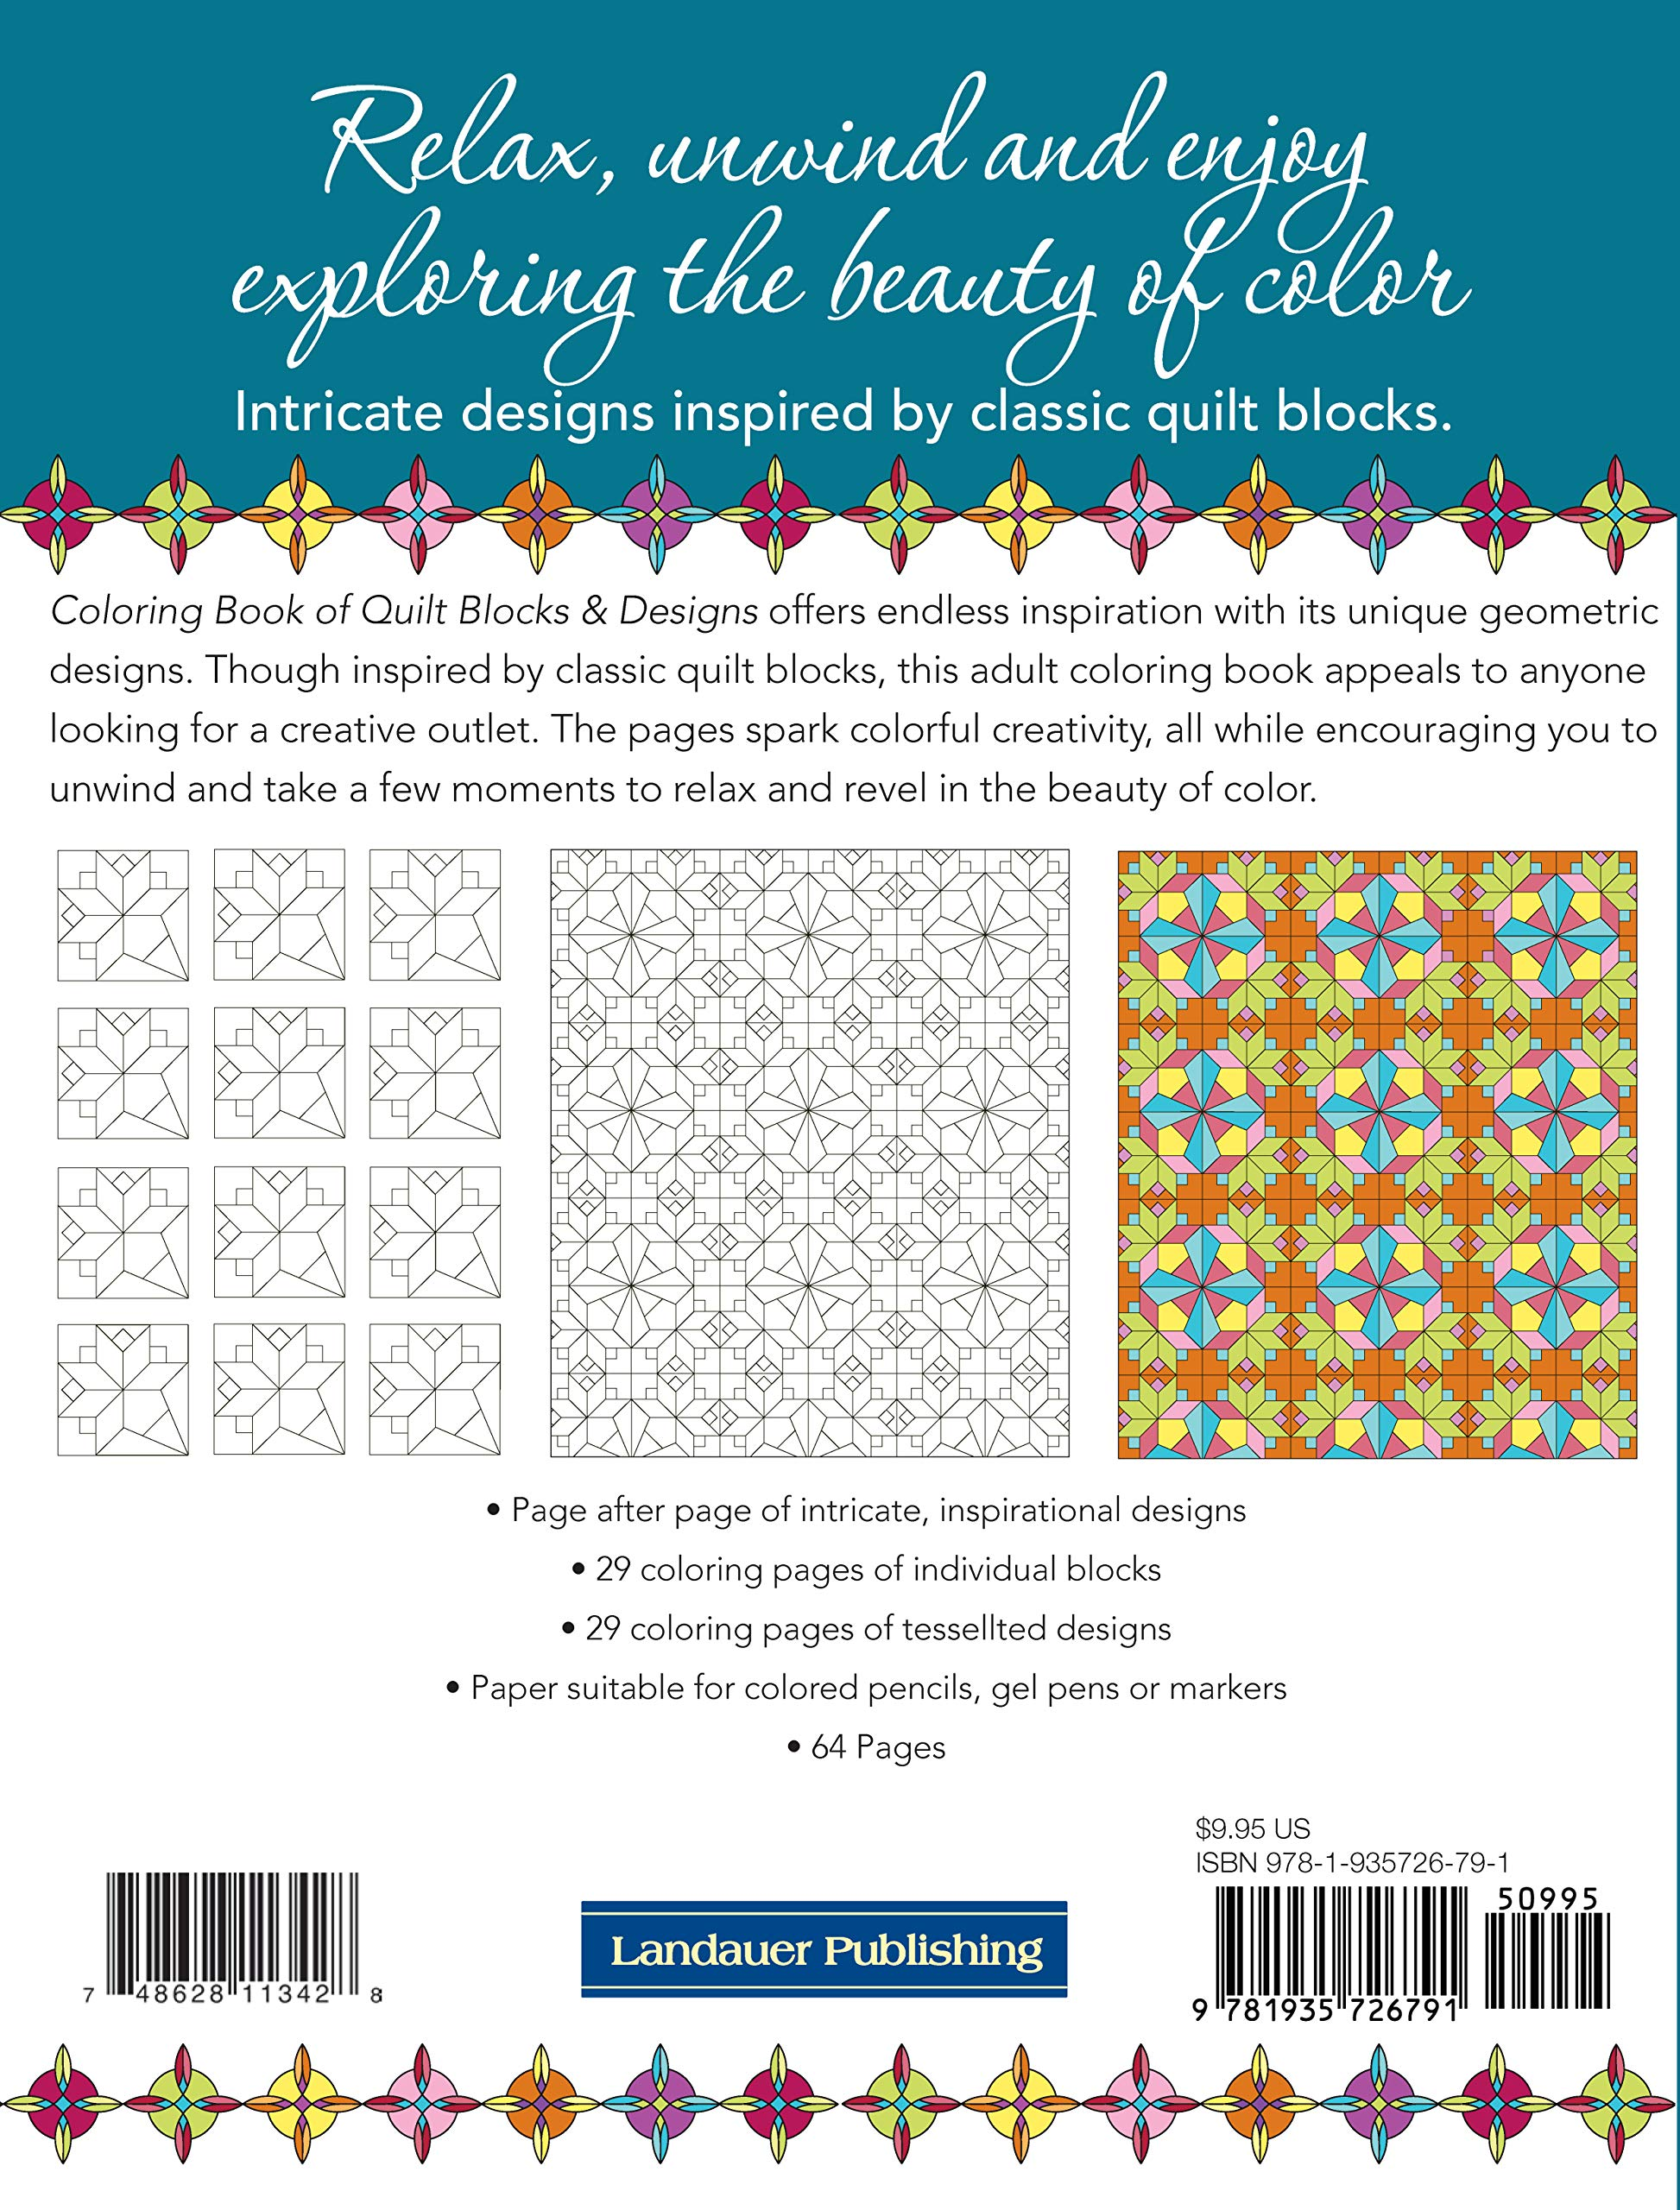 Coloring Book Of Quilt Blocks Designs Landauer 29 Individual Blocks And 29 Full Quilts To Color Each Inspired By Classic Designs Experiment With Color Variations Without Risking Your Fabrics Editors At